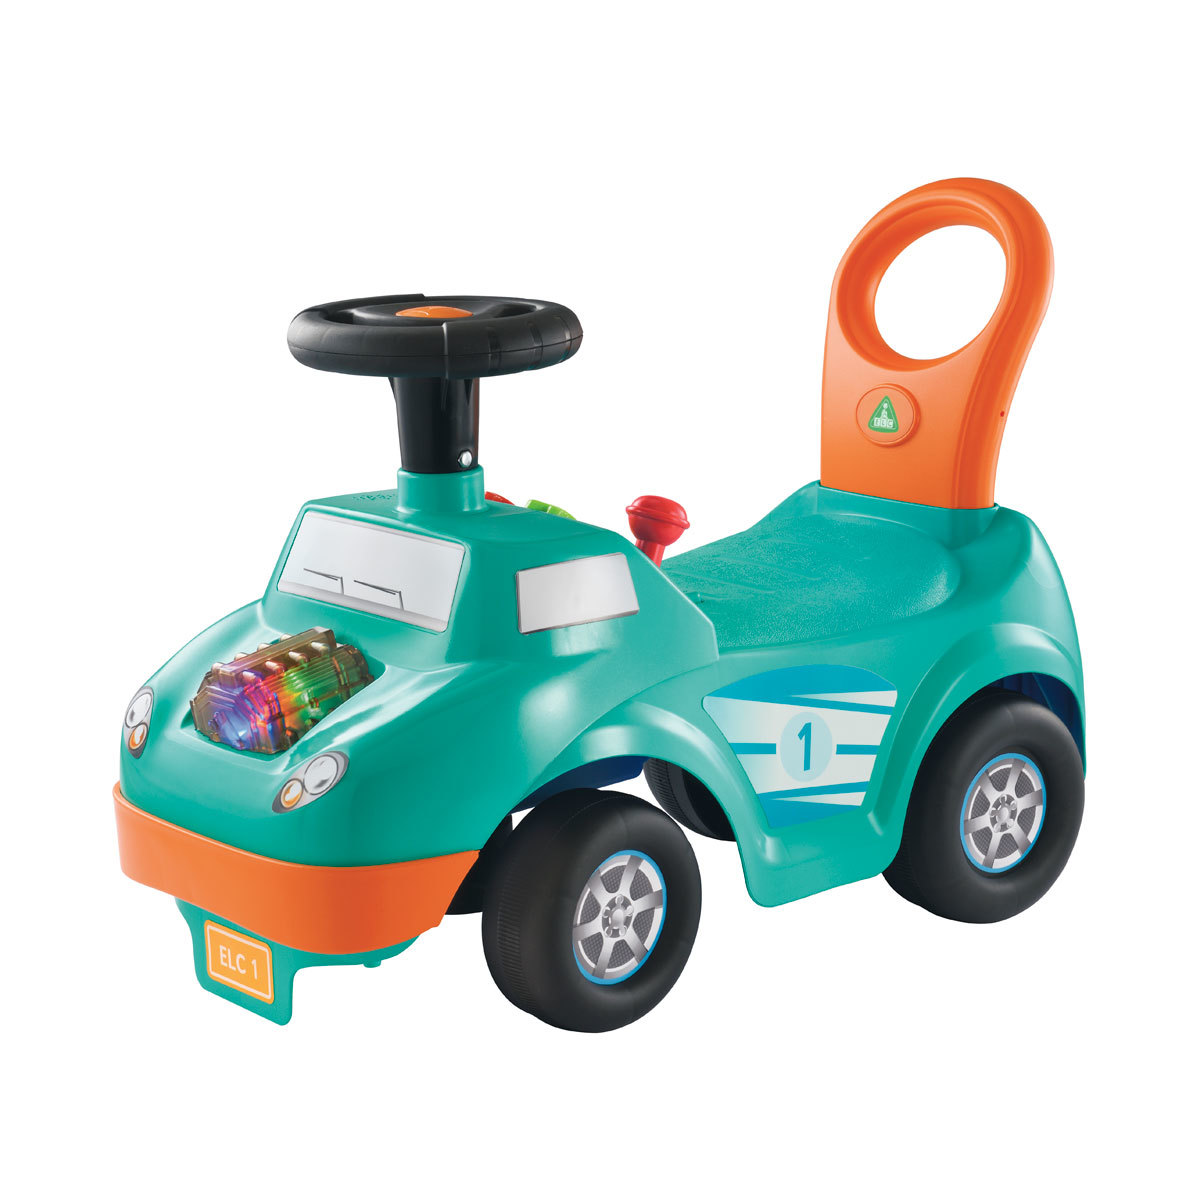 Early Learning Centre Racer Ride-On